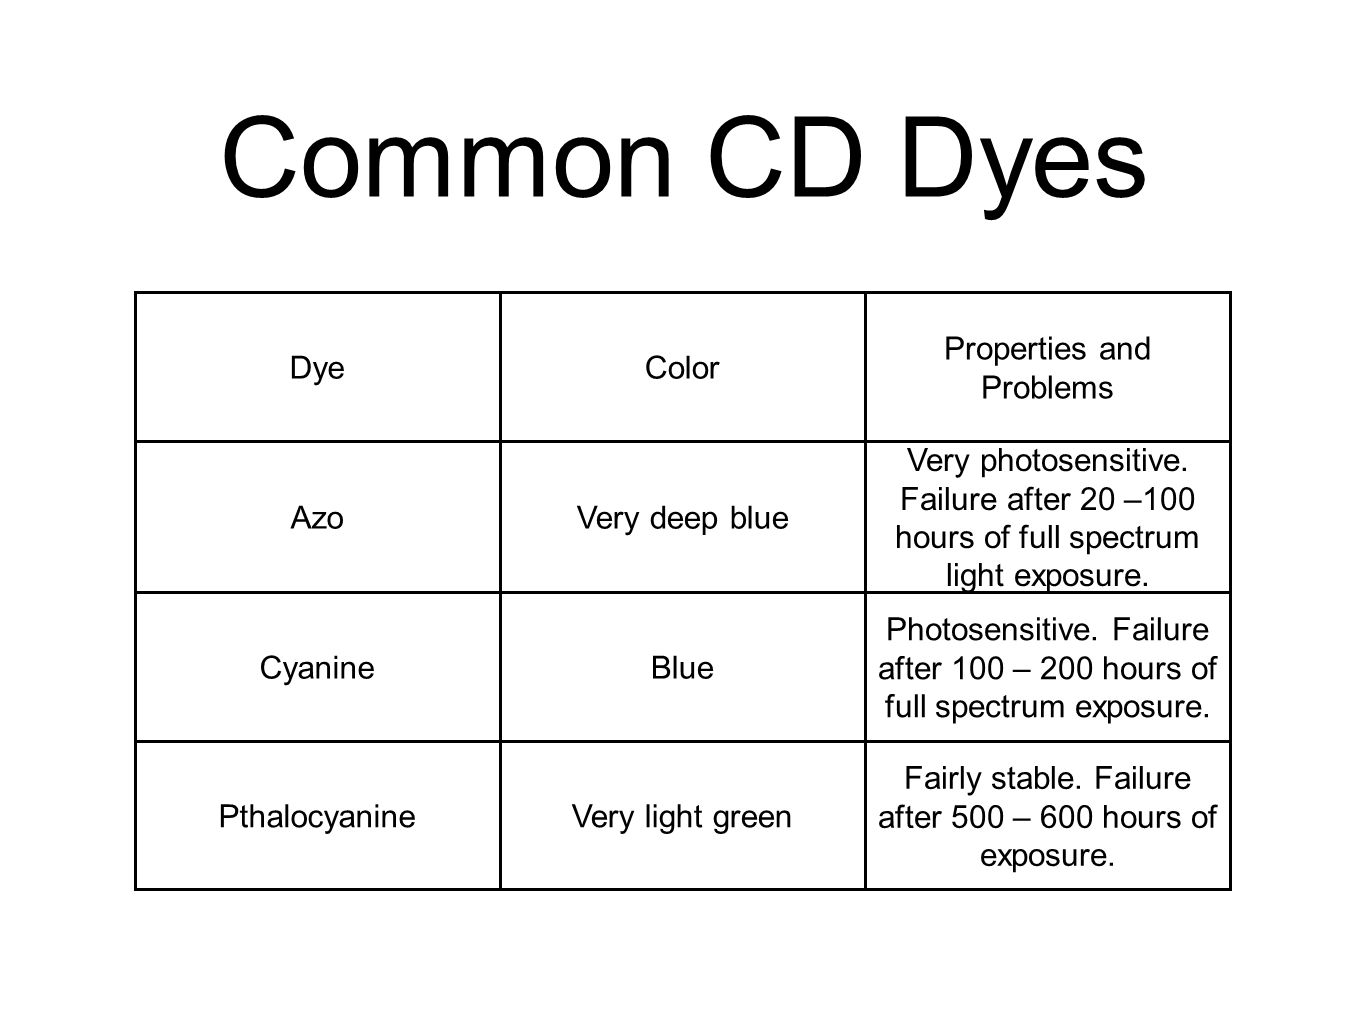 Common CD Dyes DyeColor Properties and Problems AzoVery deep blue Very photosensitive.